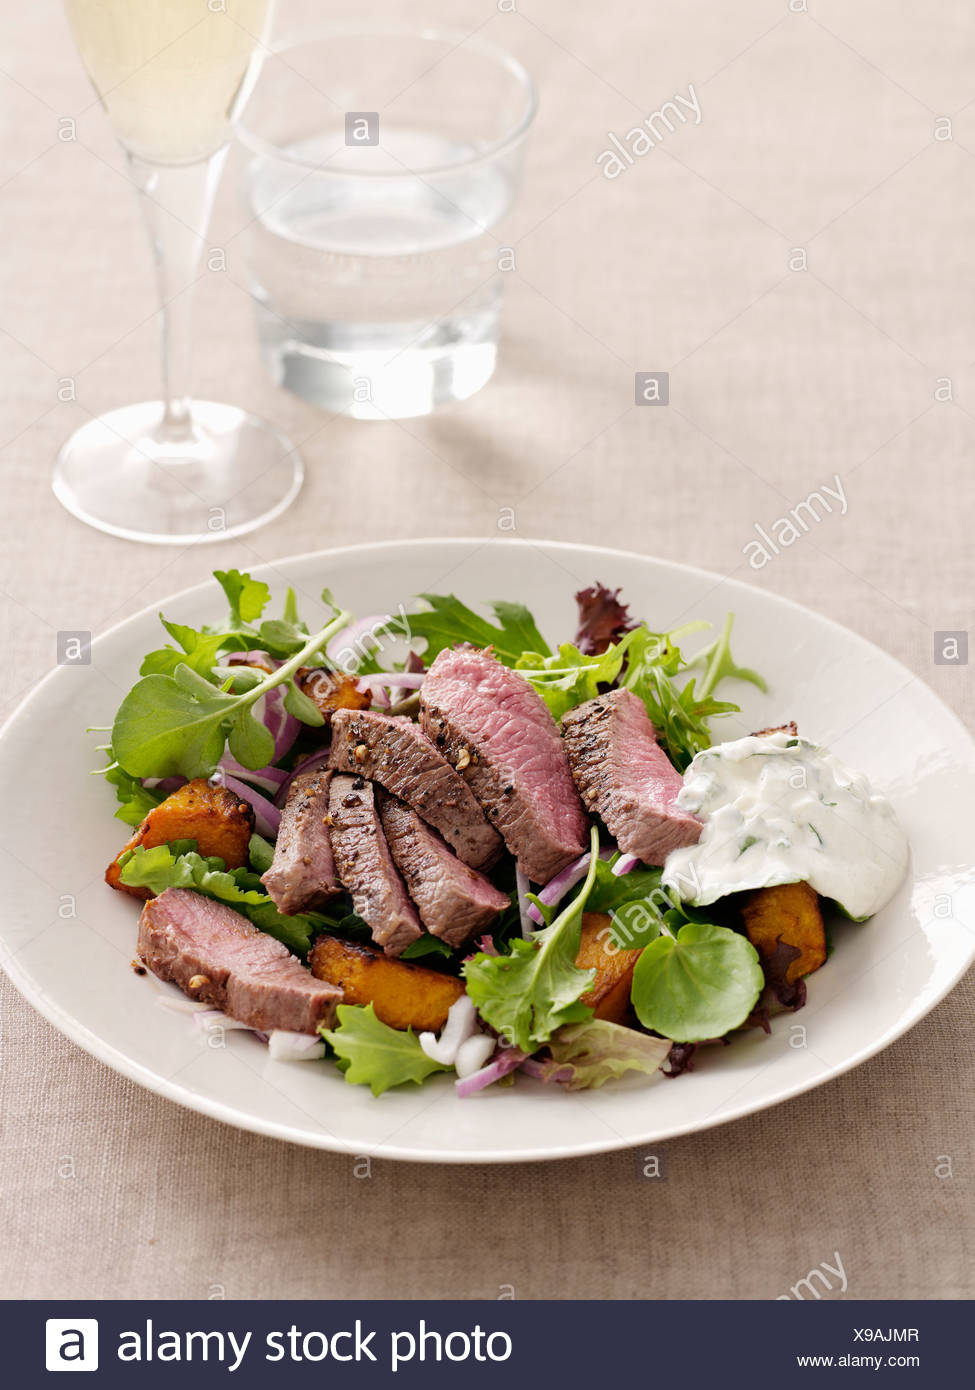 Plate of meat with vegetables - Stock Image